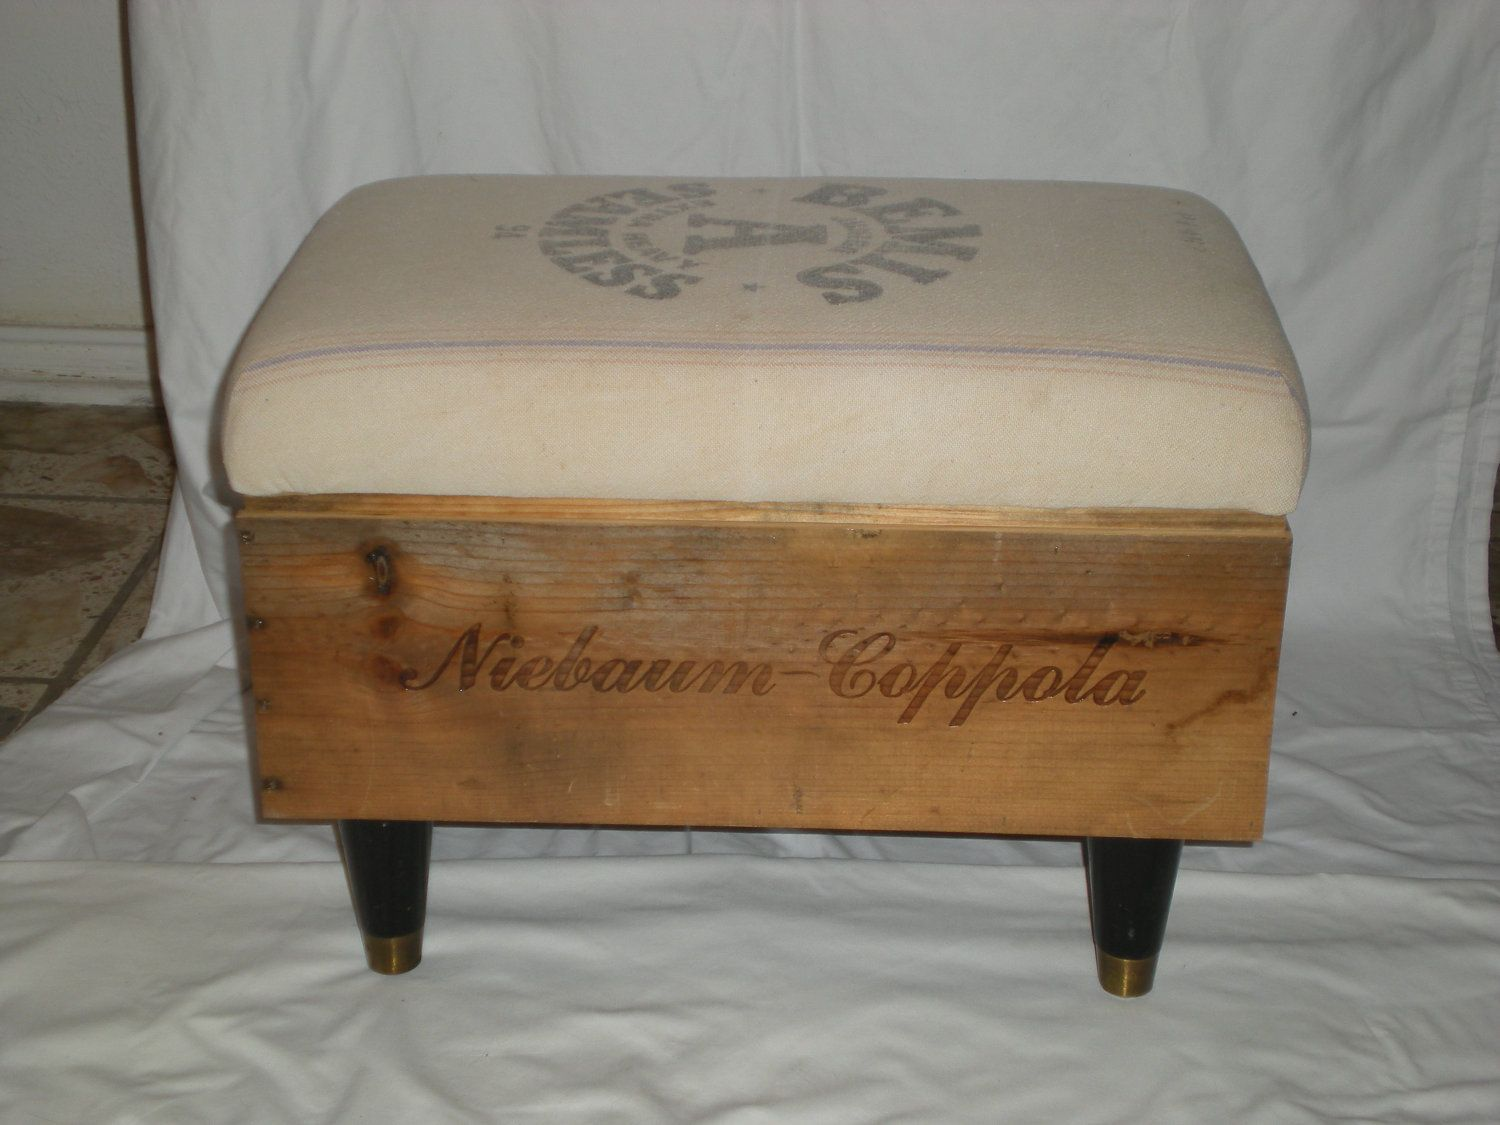 Vintage Wine Crate Ottoman I have an old apple box piano hinge lid with casters